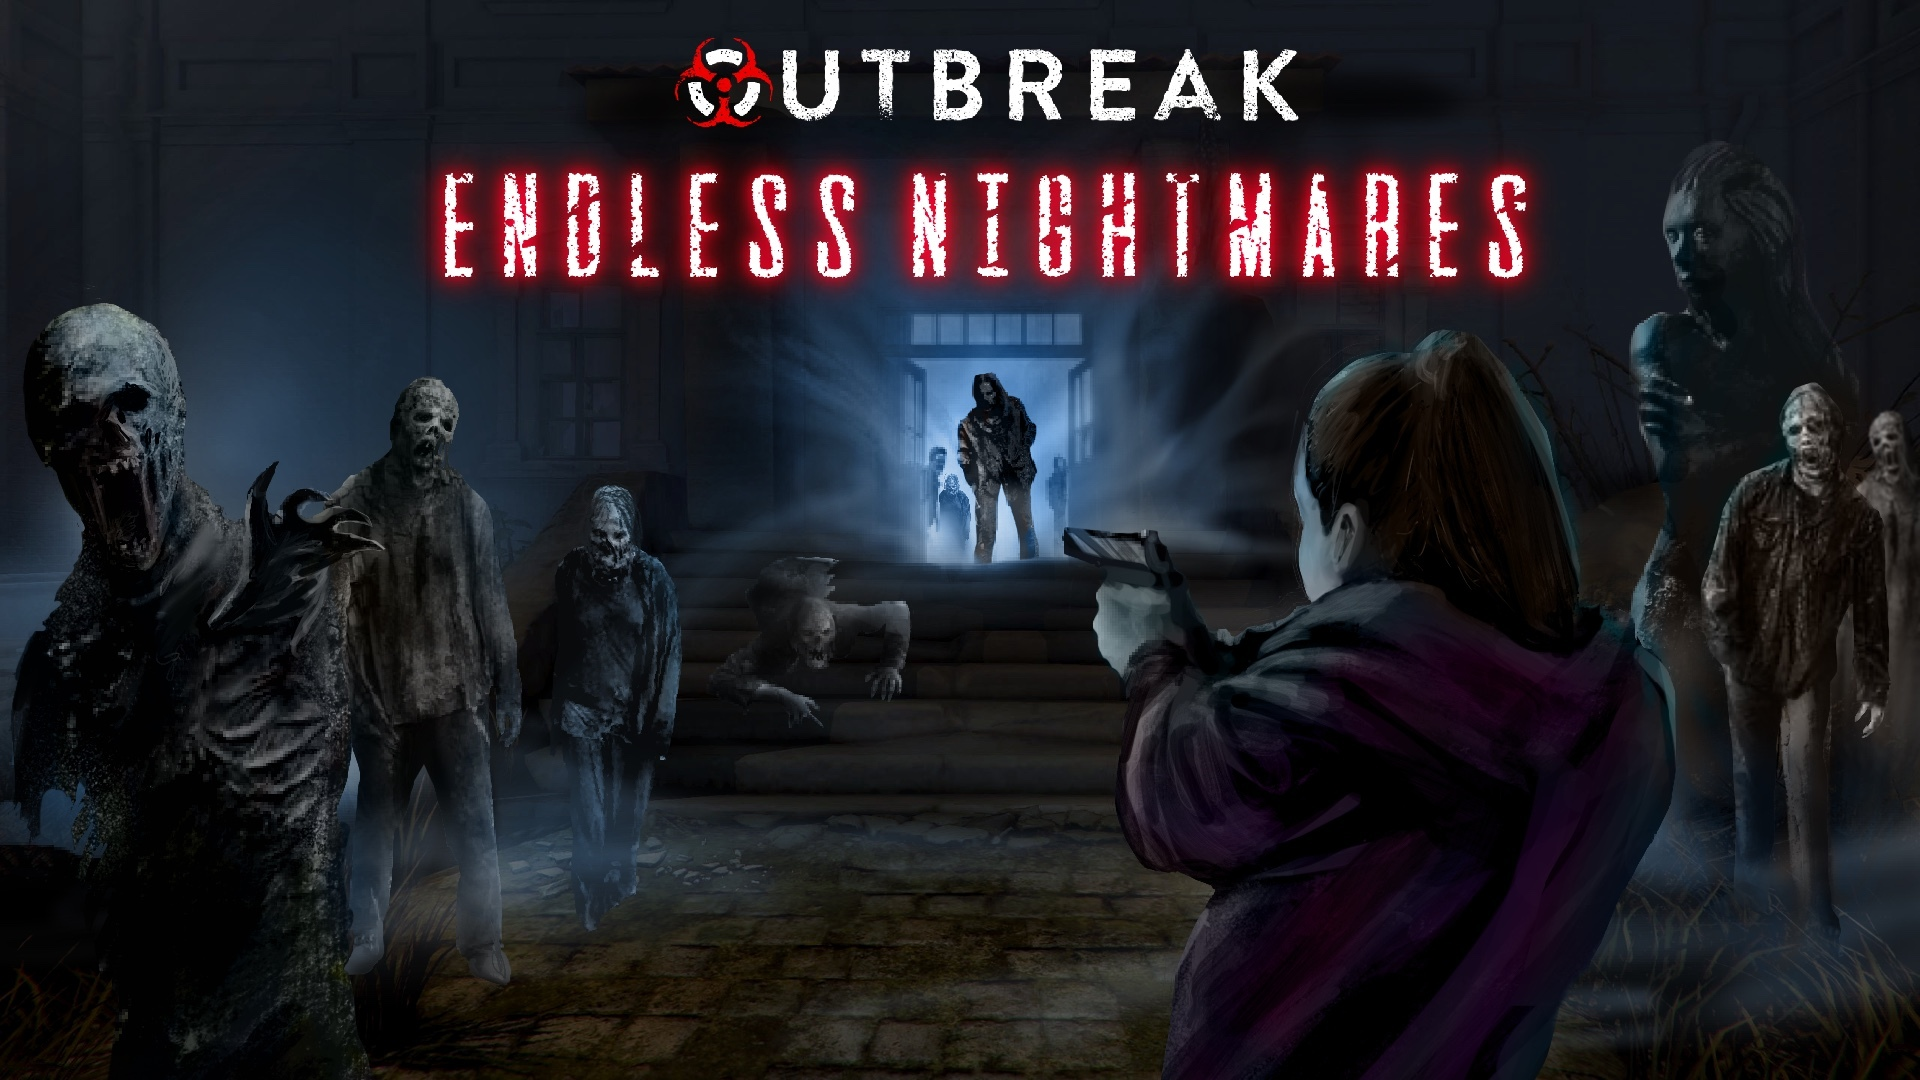 Outbreak: Endless Nightmares Is Out Now On Playstation 5, Xbox Series X|S, Nintendo Switch & Steam